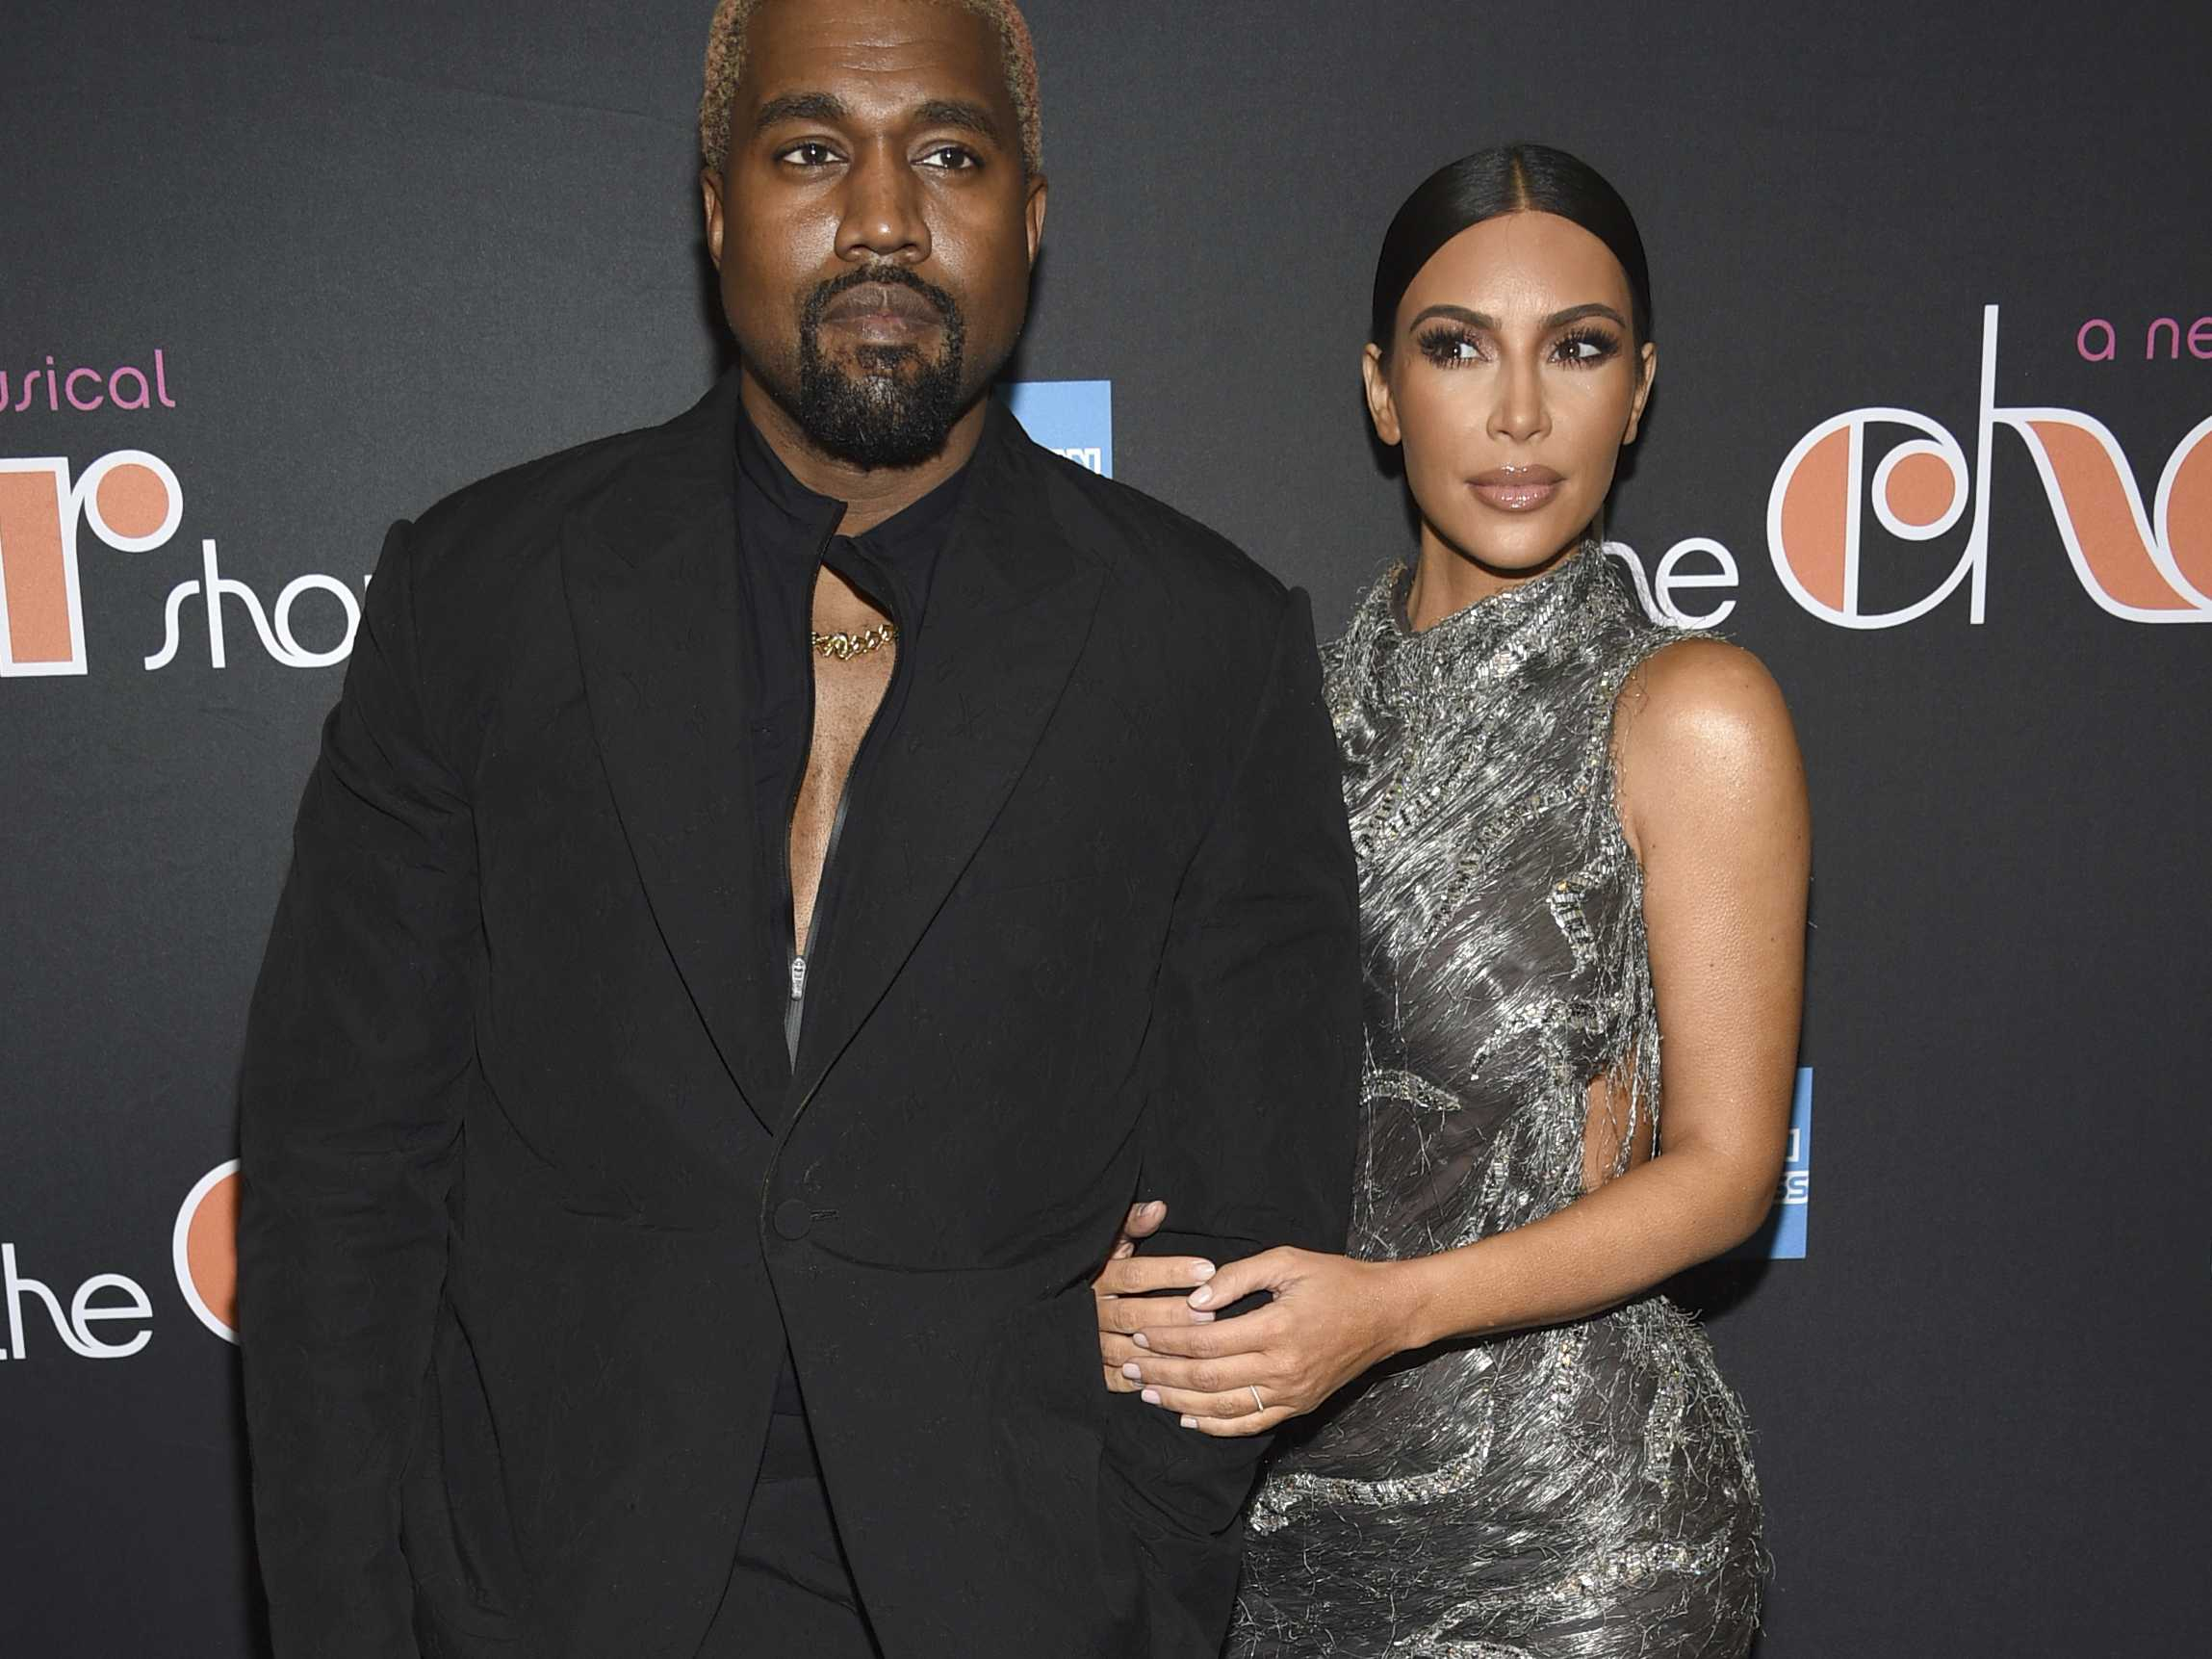 Kanye West Apologizes for Using Phone During Cher Musical